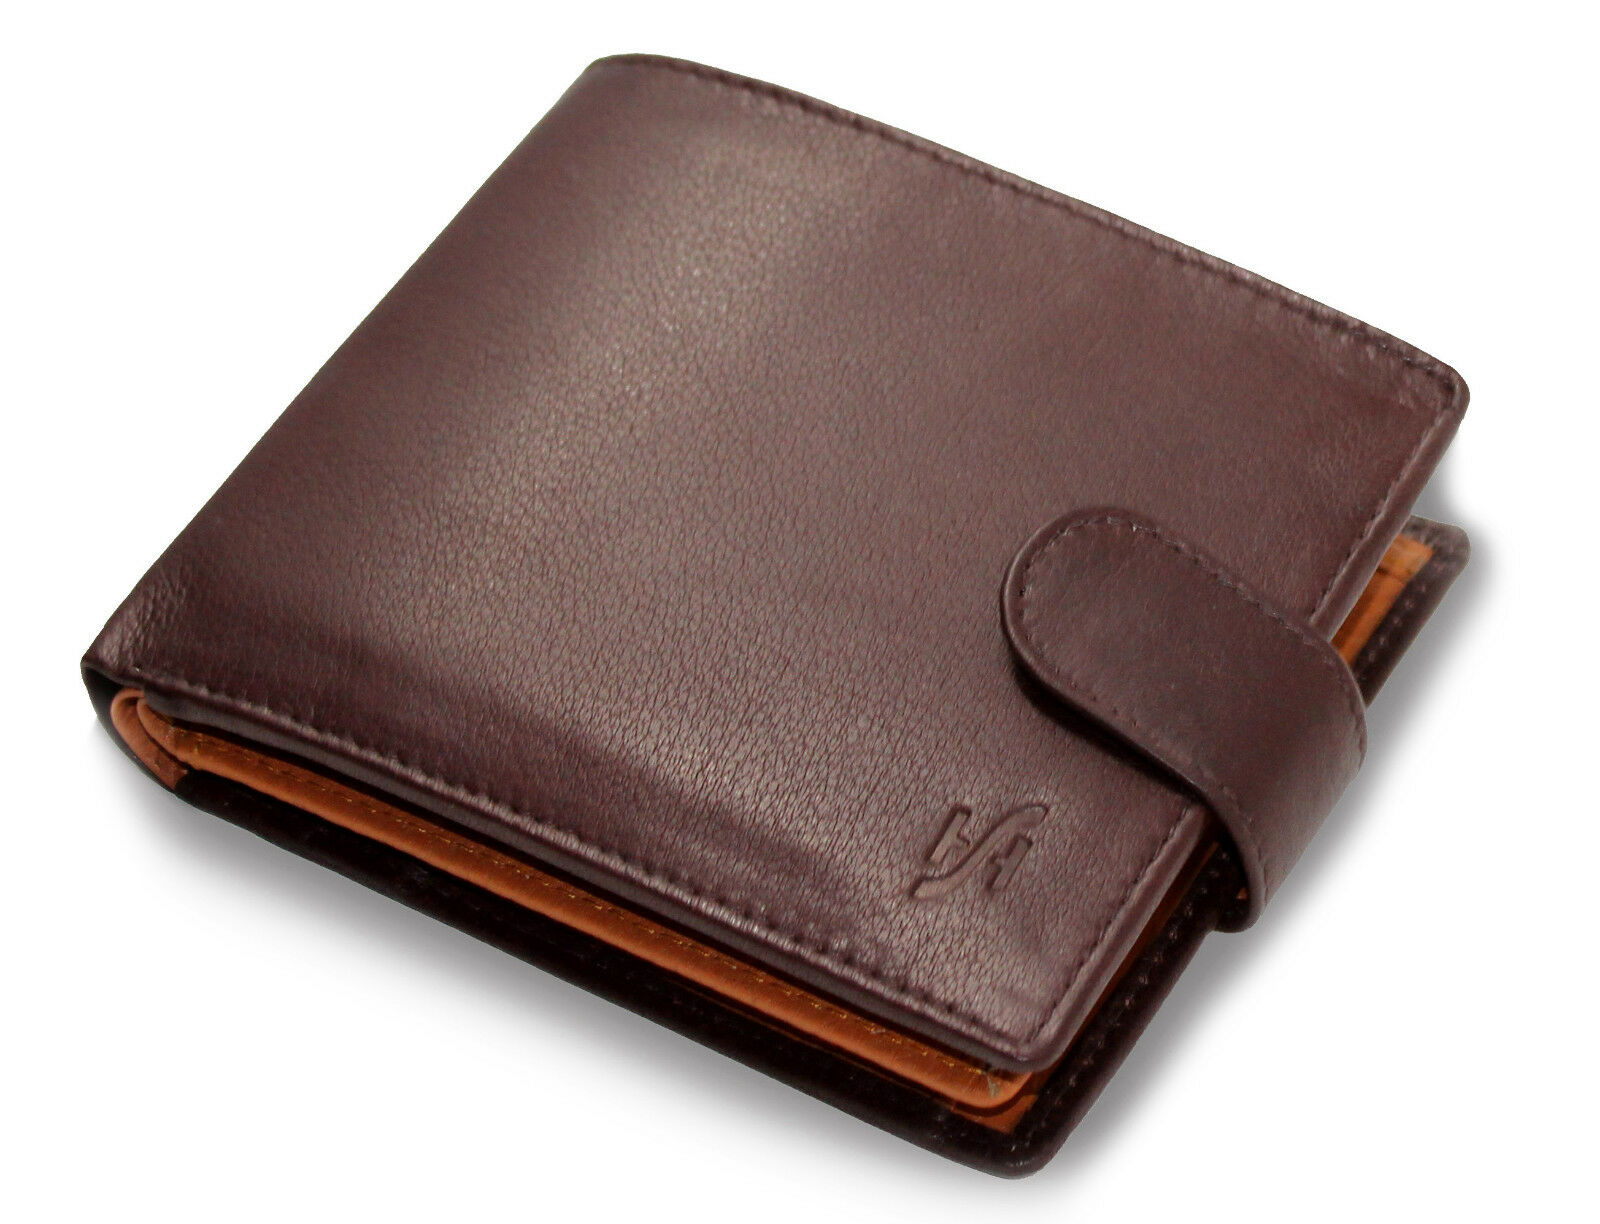 Mens RFID Blocking  Soft Nappa Leather Wallet Brown Tan